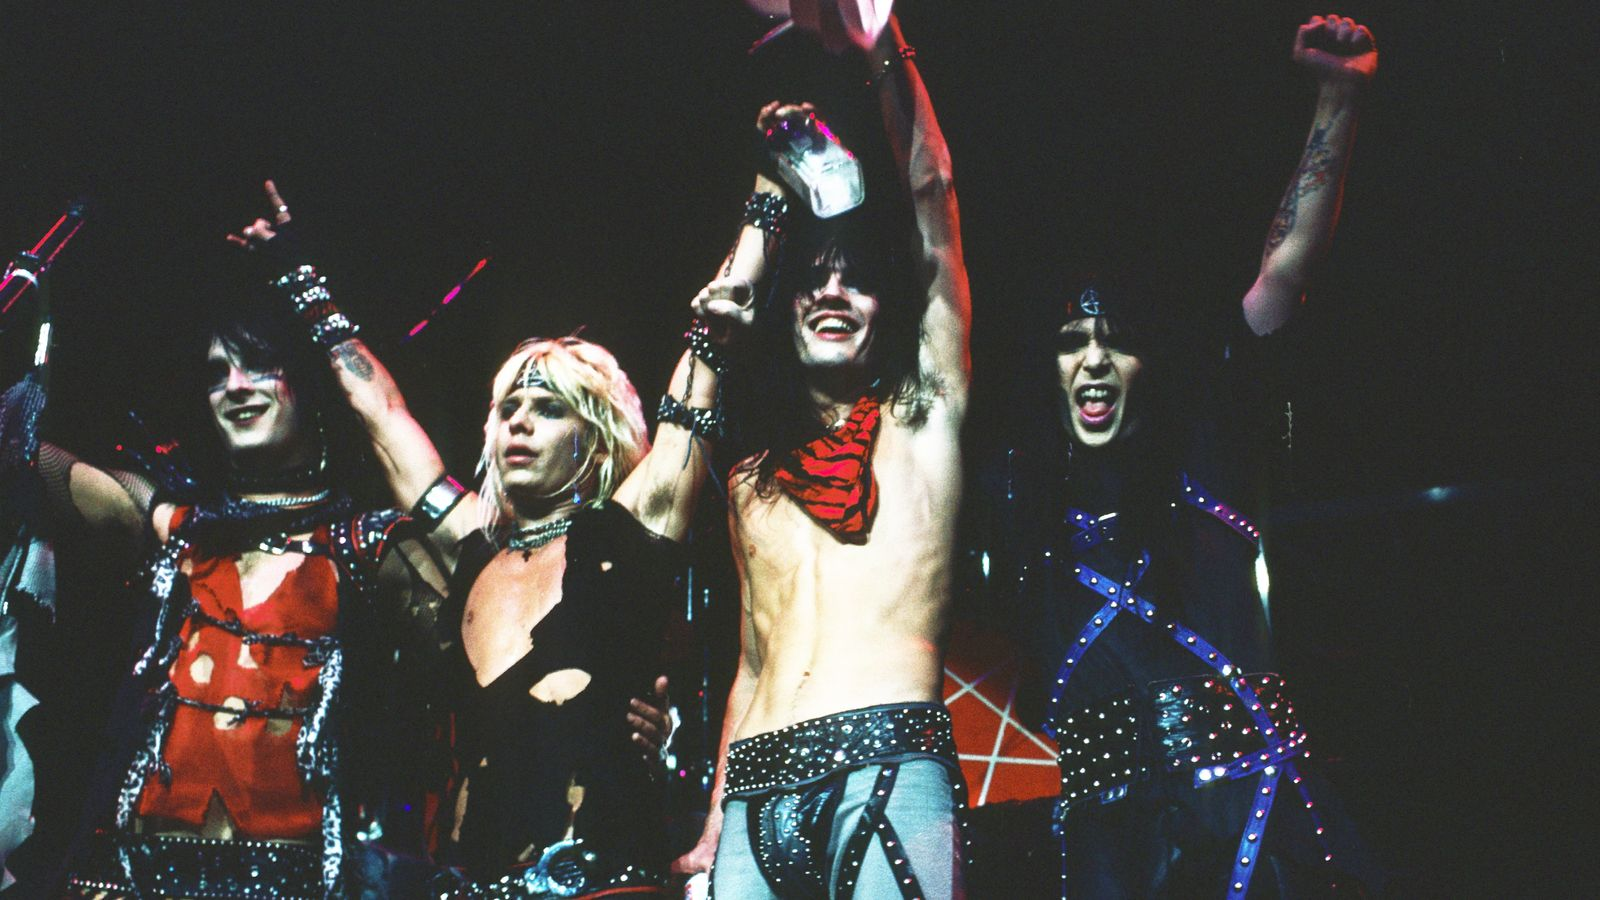 Motley Crue announce comeback by blowing up 'no tours' contract | Ents & Arts News | Sky News